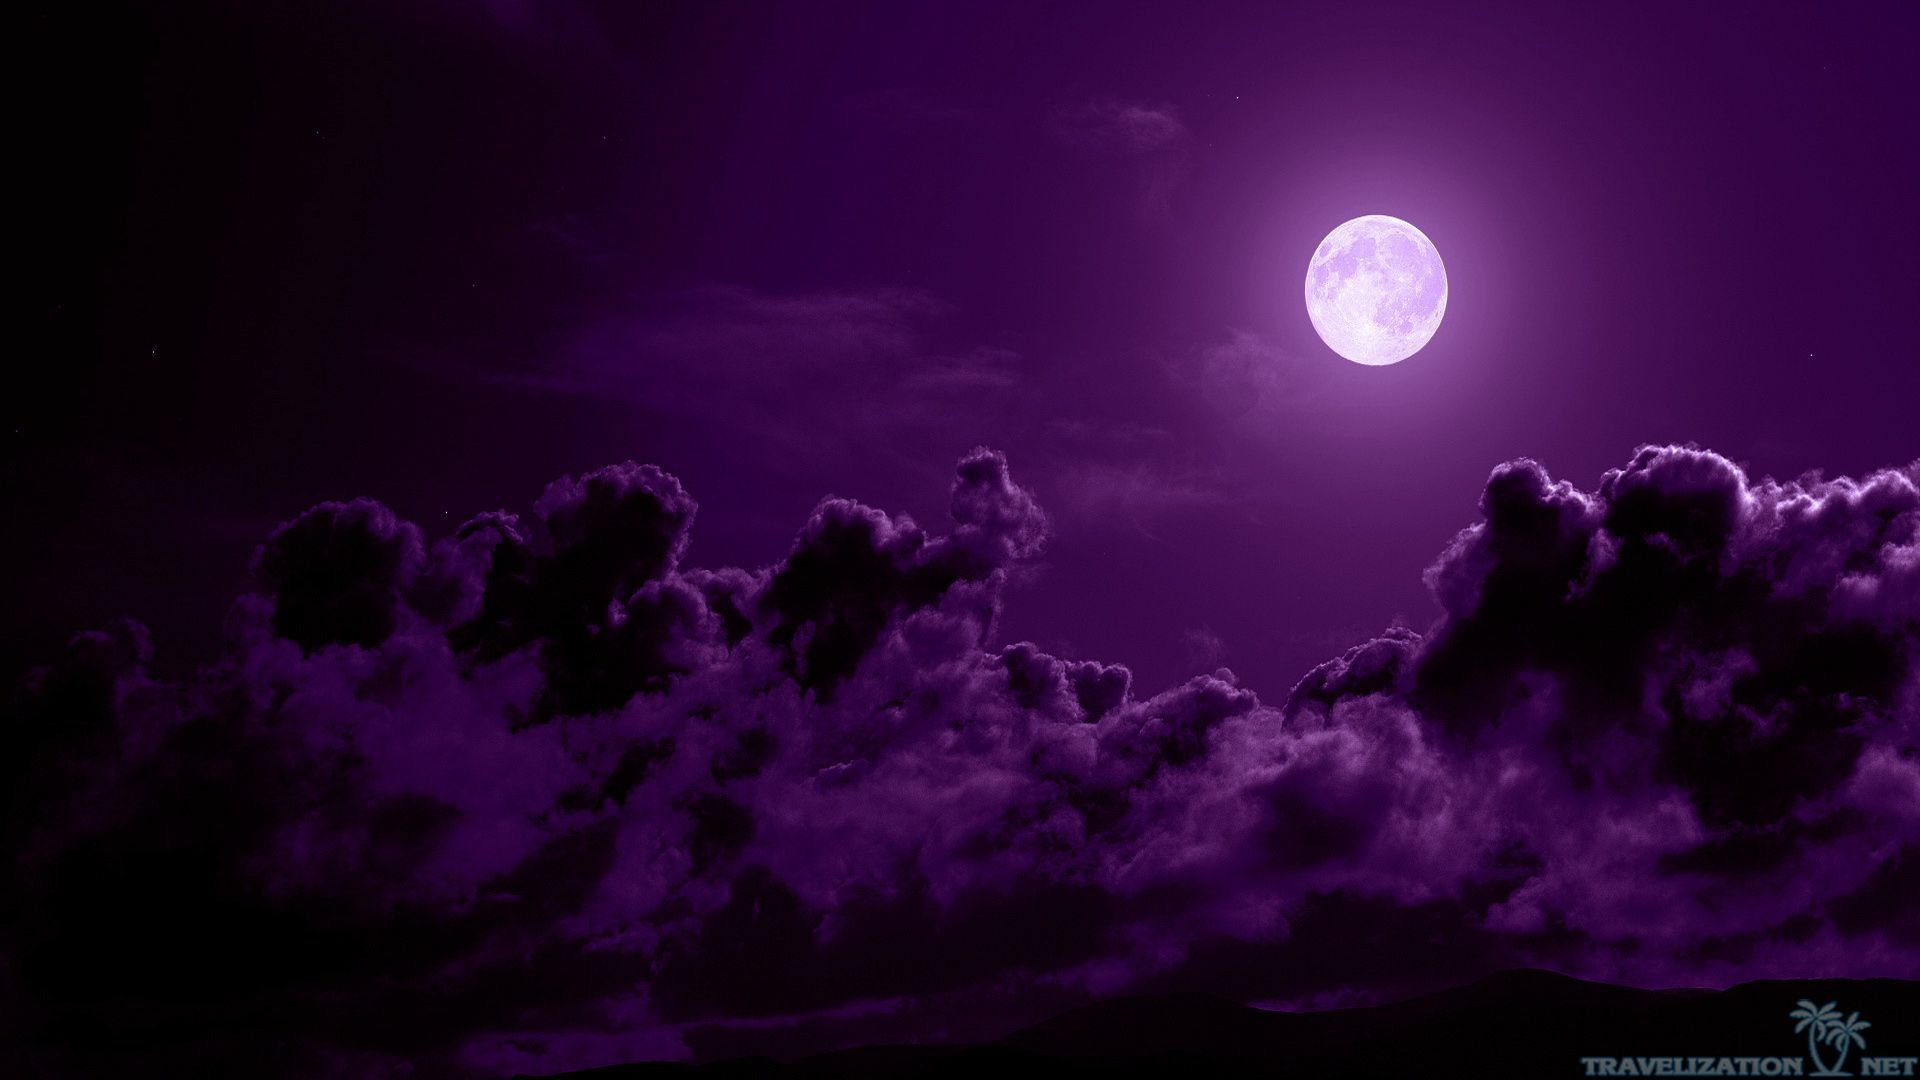 You can find Fascinating Moon wallpapers in many resolution such as 1024×768, 1280×1024, 1366×768, ...